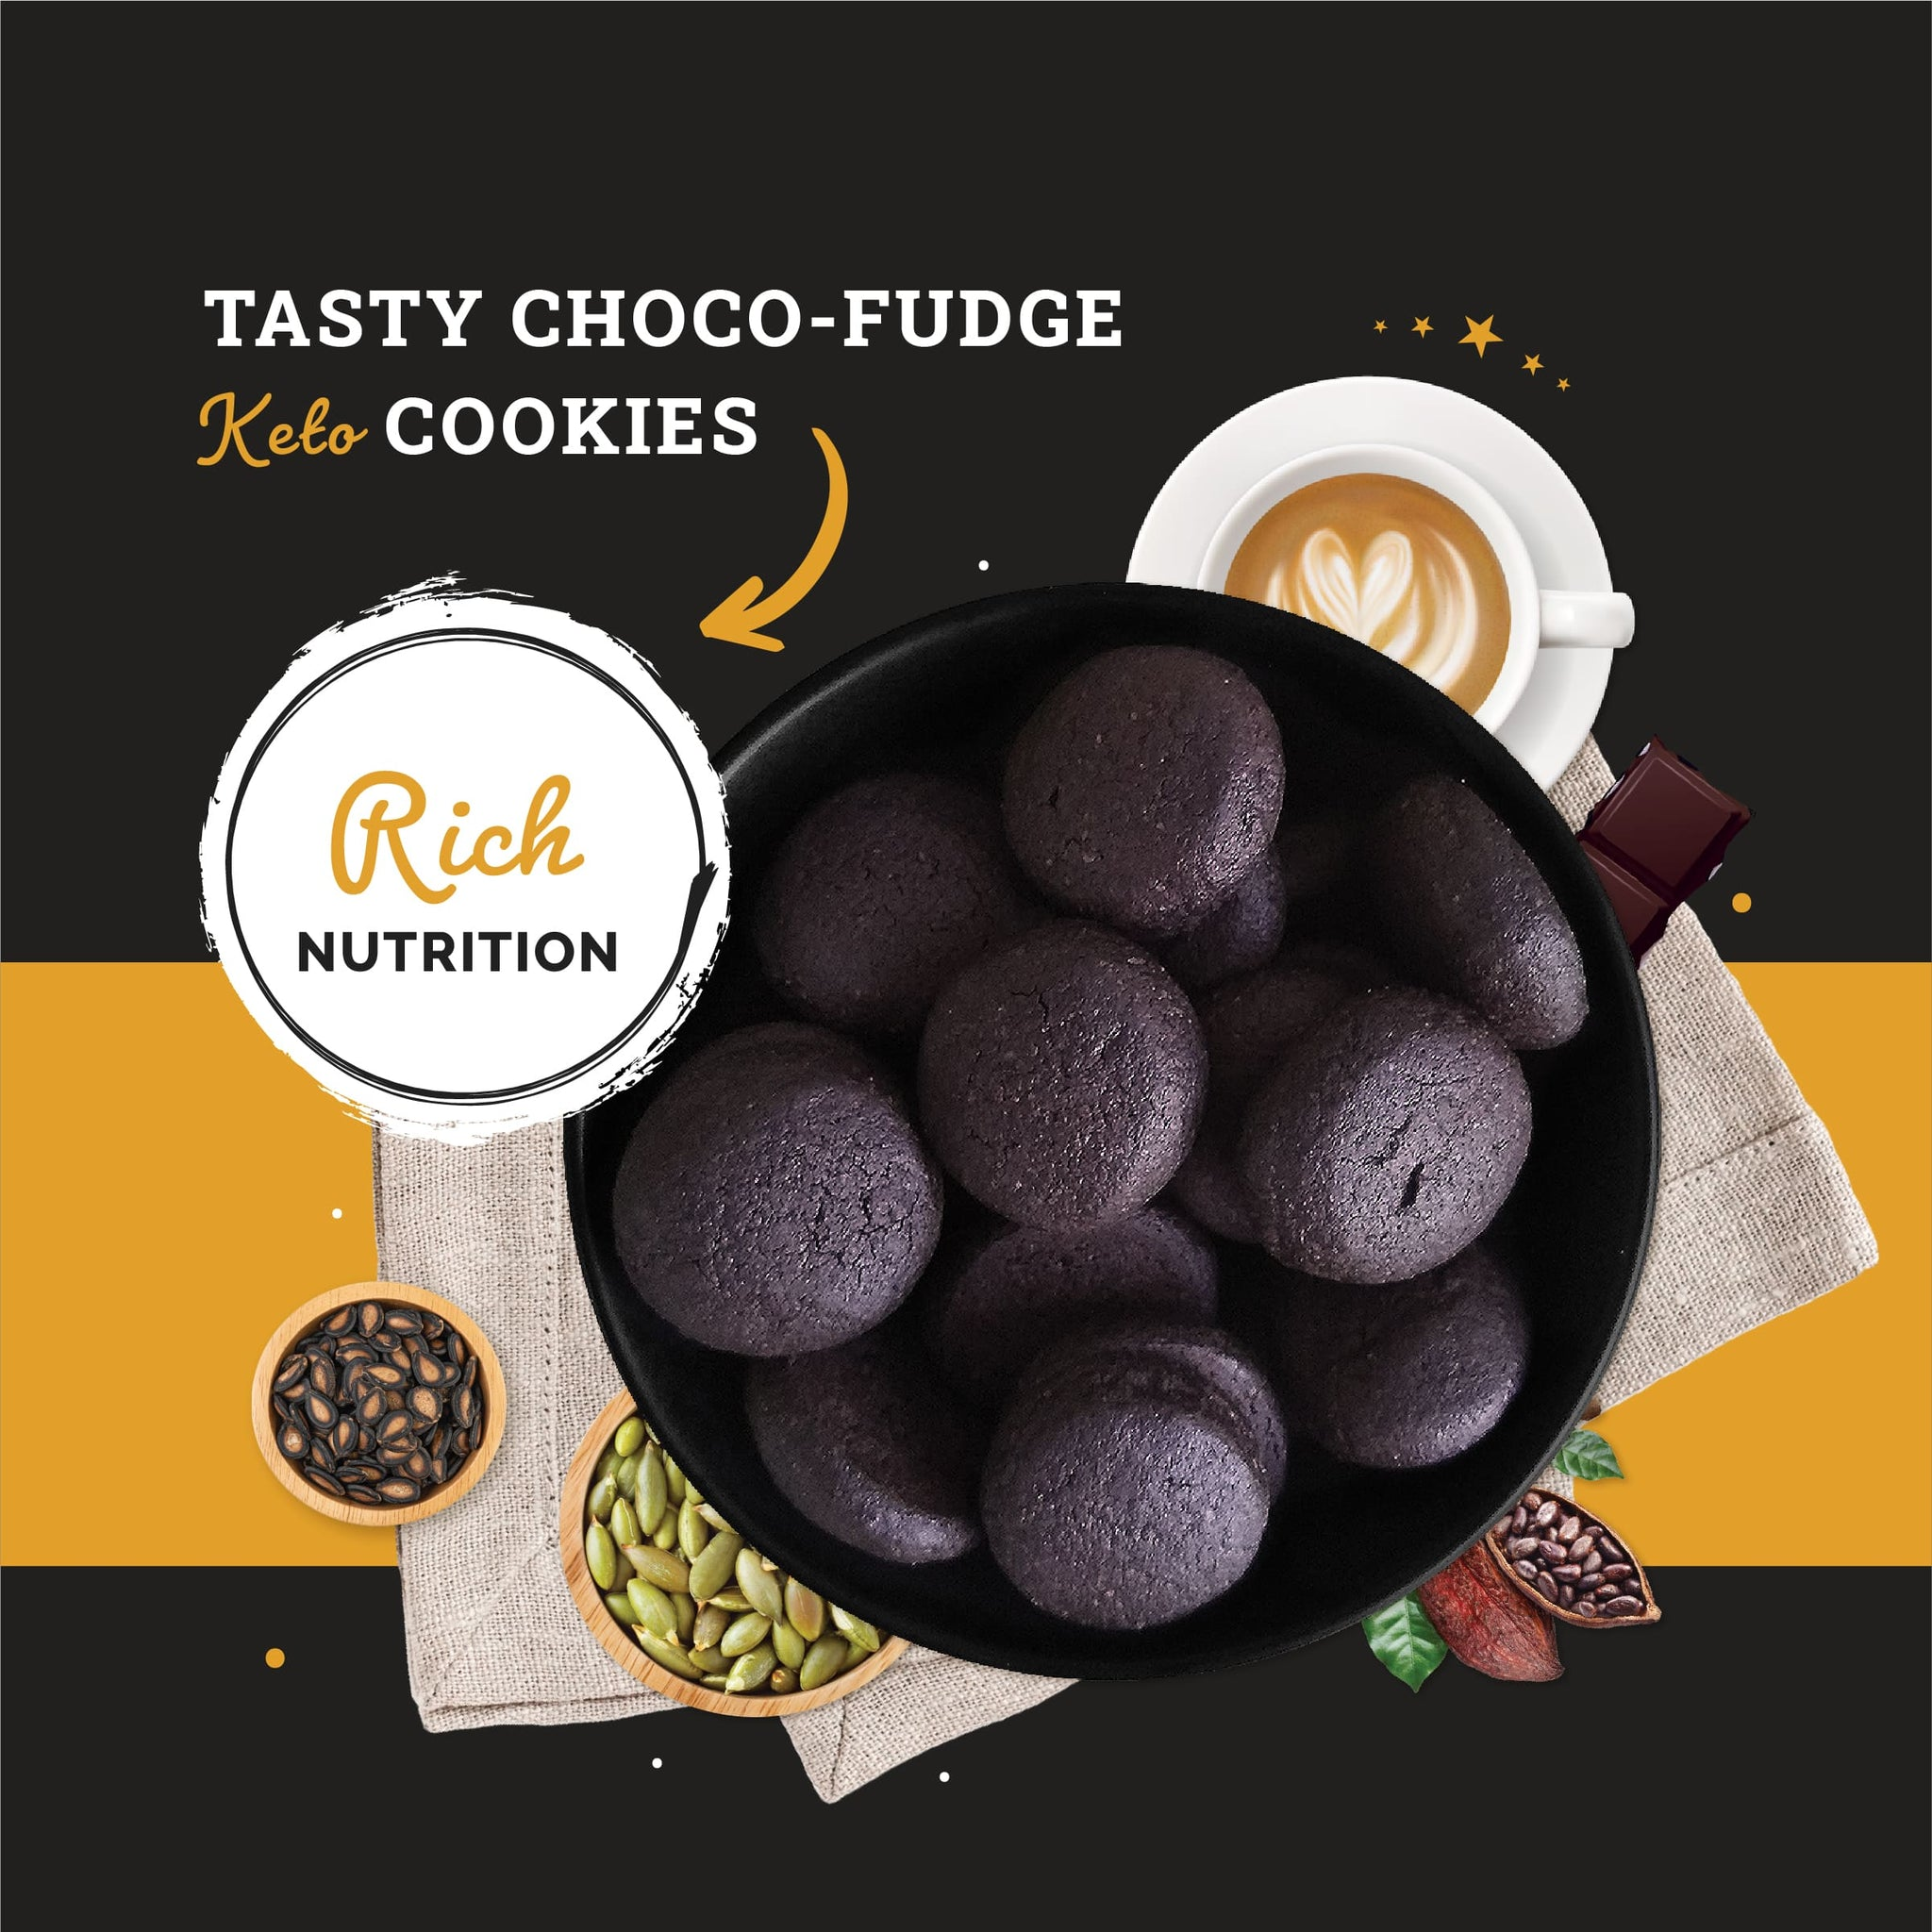 Ketofy Choco Fudge Keto Cookies | Sugar Free